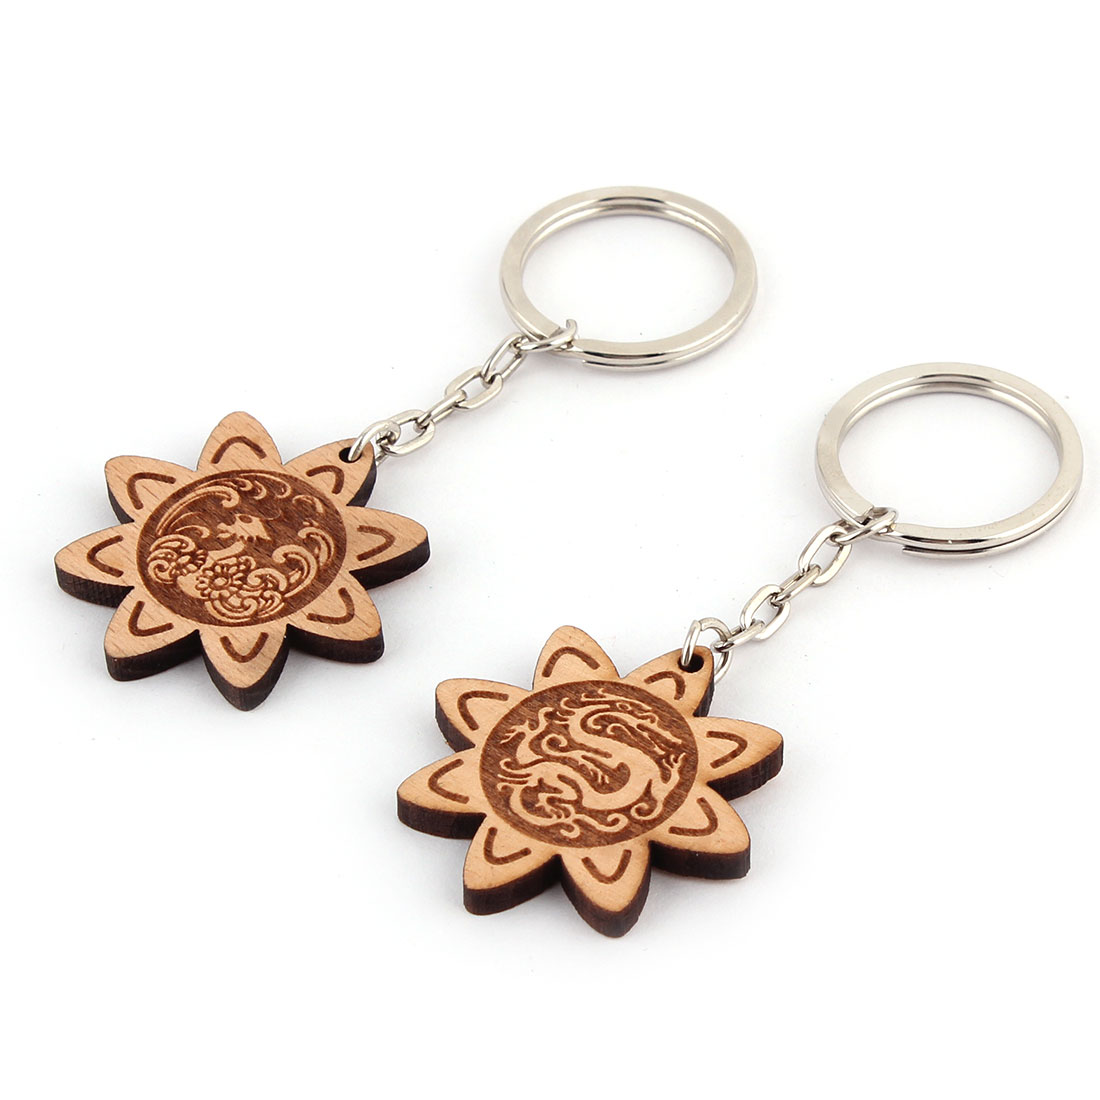 Metal Portable ClampDetailing Pendant Keyring Keychain Ornament 2pcs